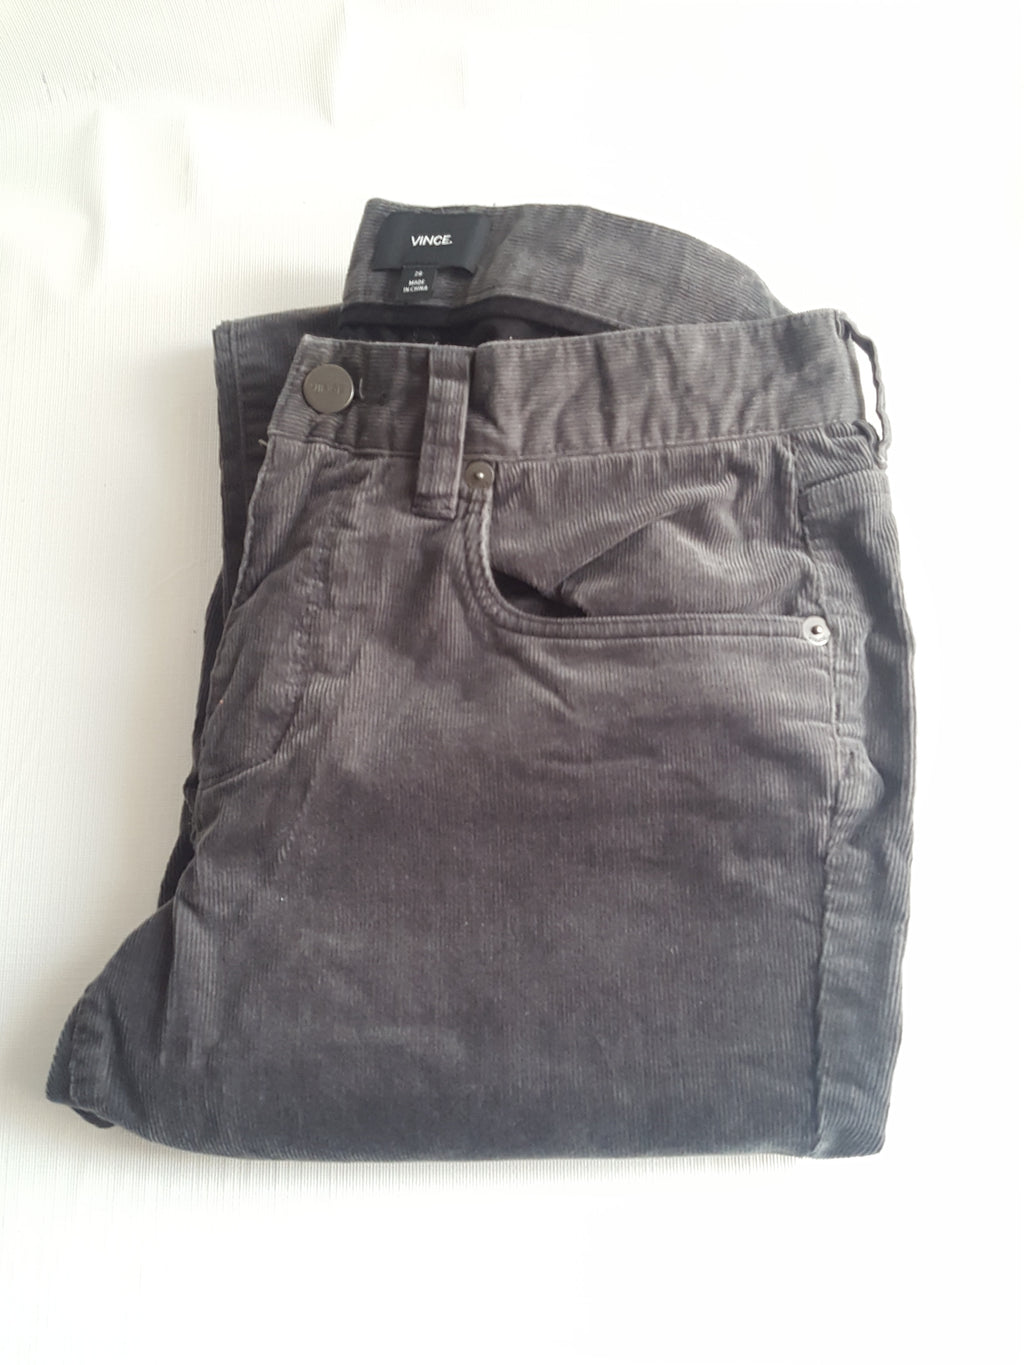 Vince Stretch Courdoruy Slim Fit Pants Sz. 28